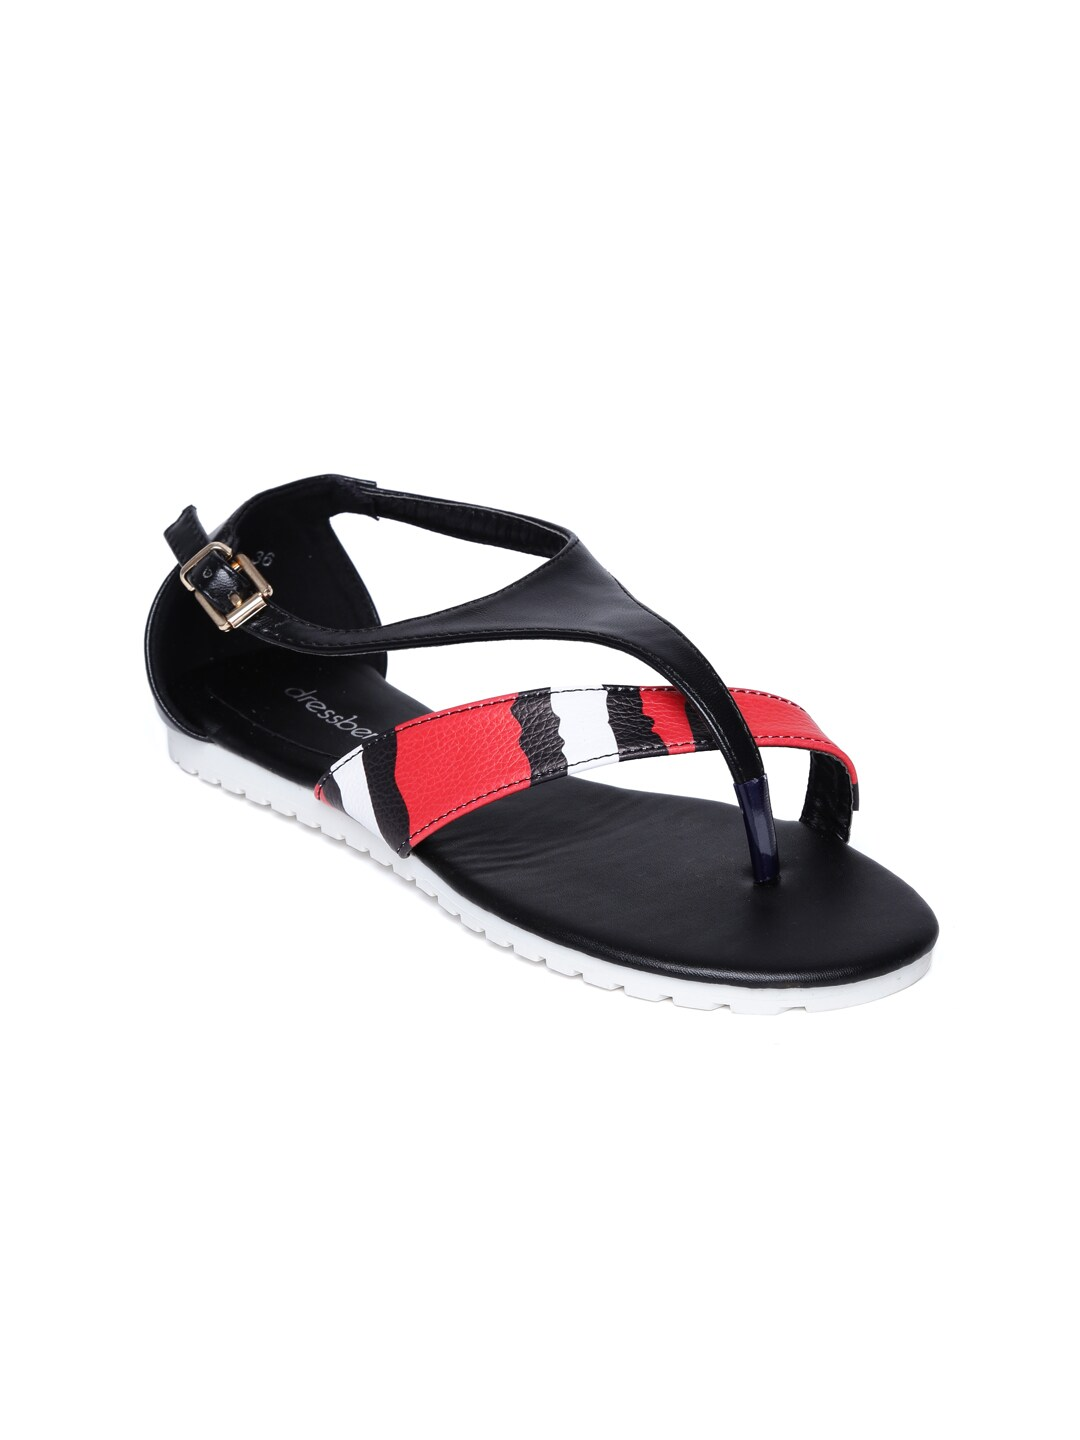 DressBerry Women Black Sandals